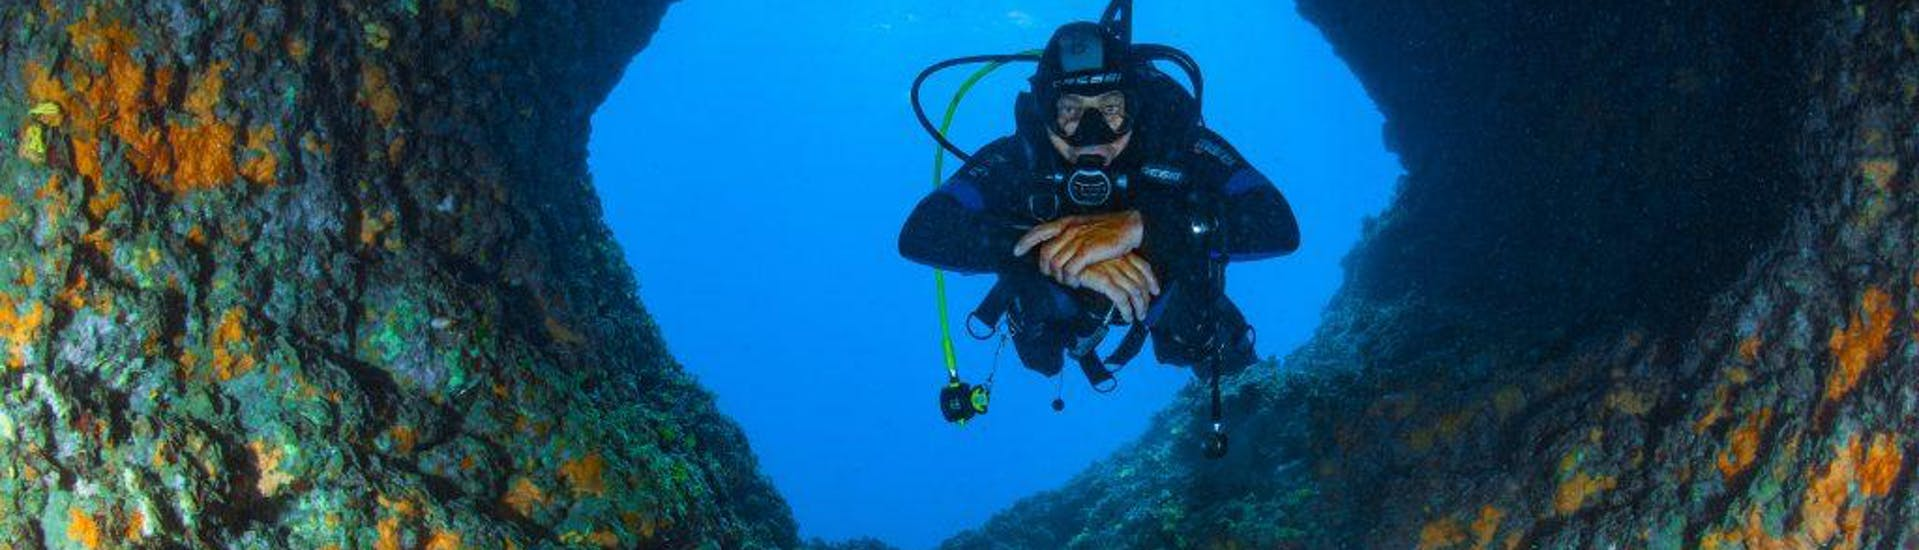 PADI Open Water Diver Referral Course in Hvar